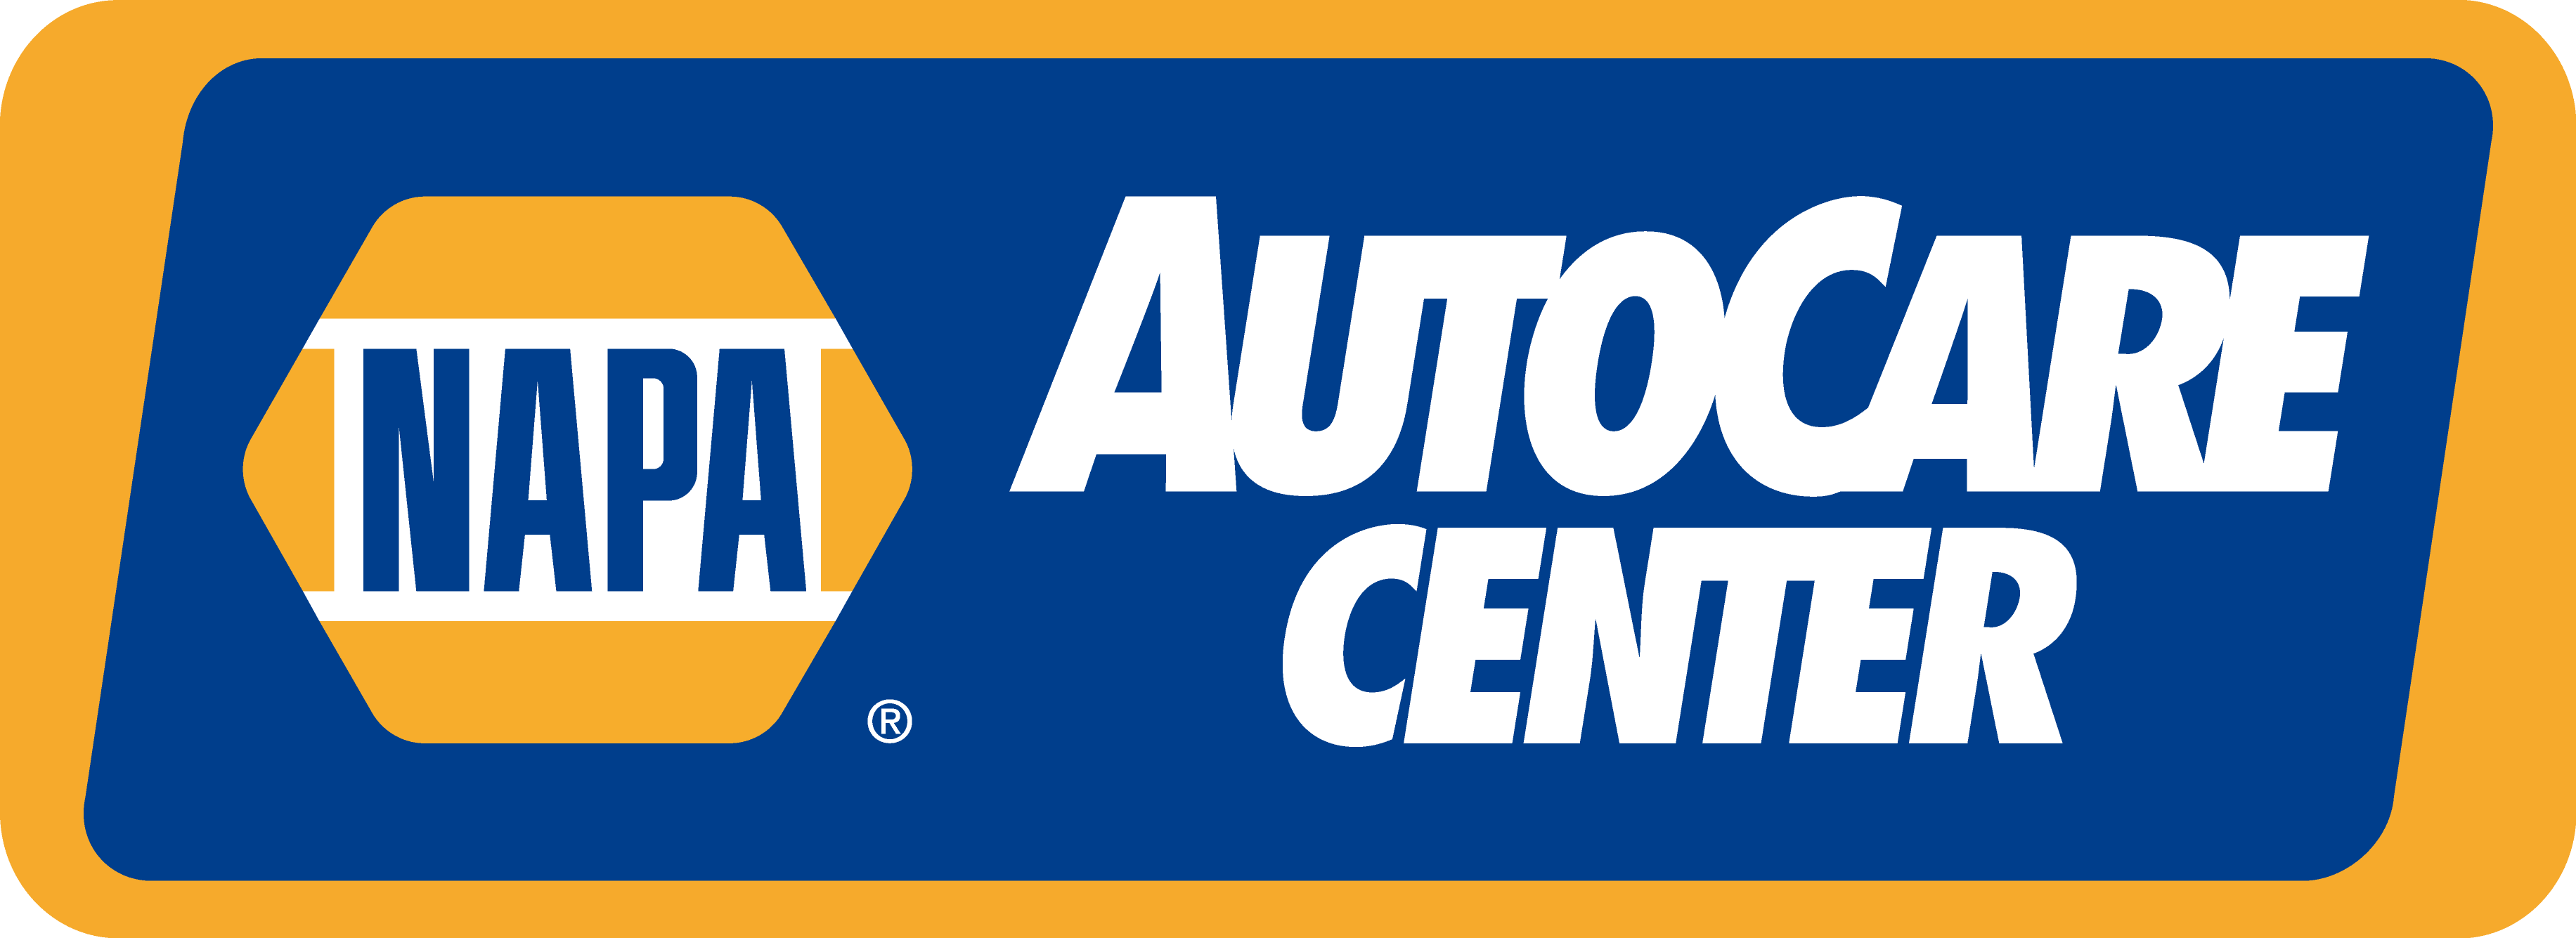 NAPA Auto Care Center, Fenton Auto Repair, Fenton, MO, 63026